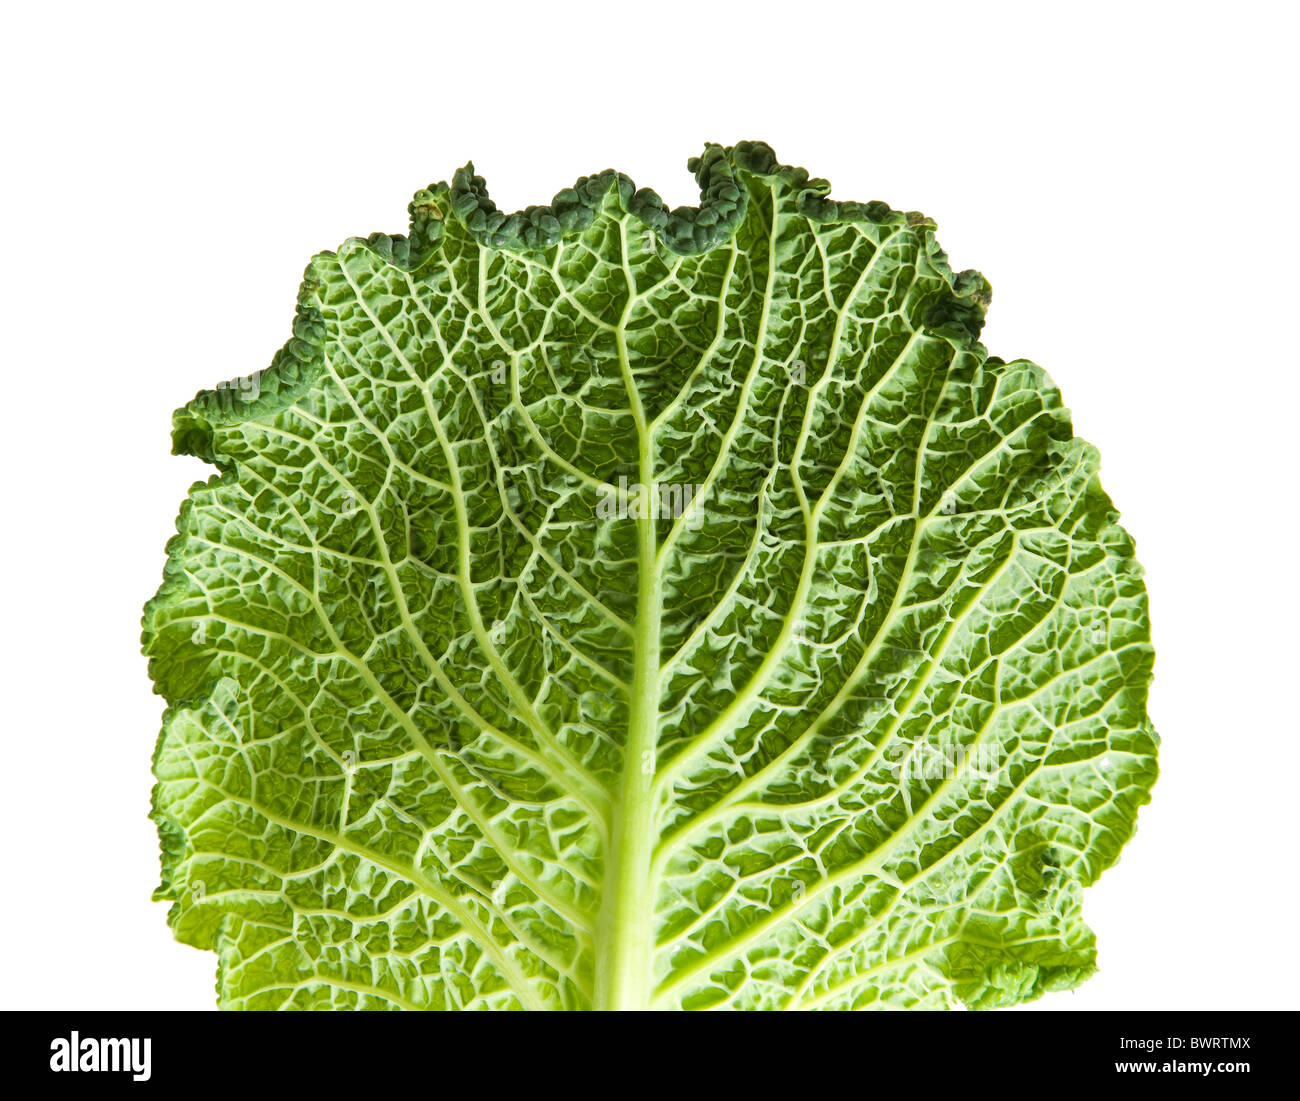 Savoy Cabbage Leaf Isolated On White Background Stock Photo Alamy